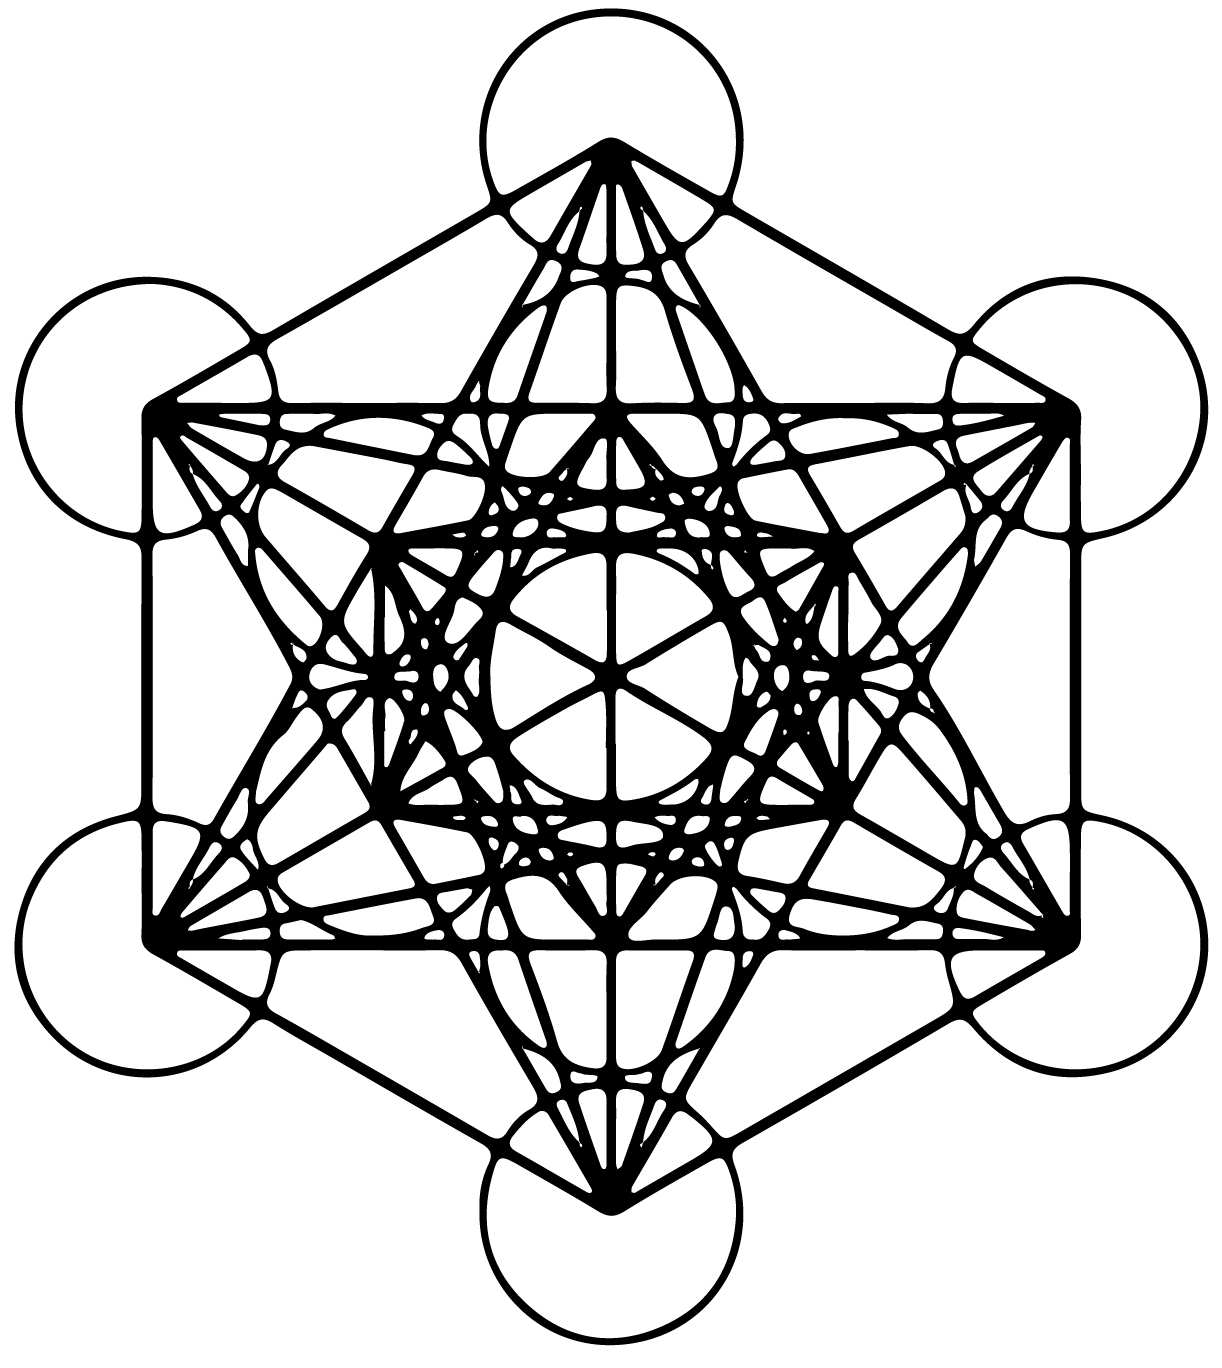 Metatrons-Cube-Symbol-Meaning-Flower-Of-Life-Sacred-Geometry-Symbol.jpg